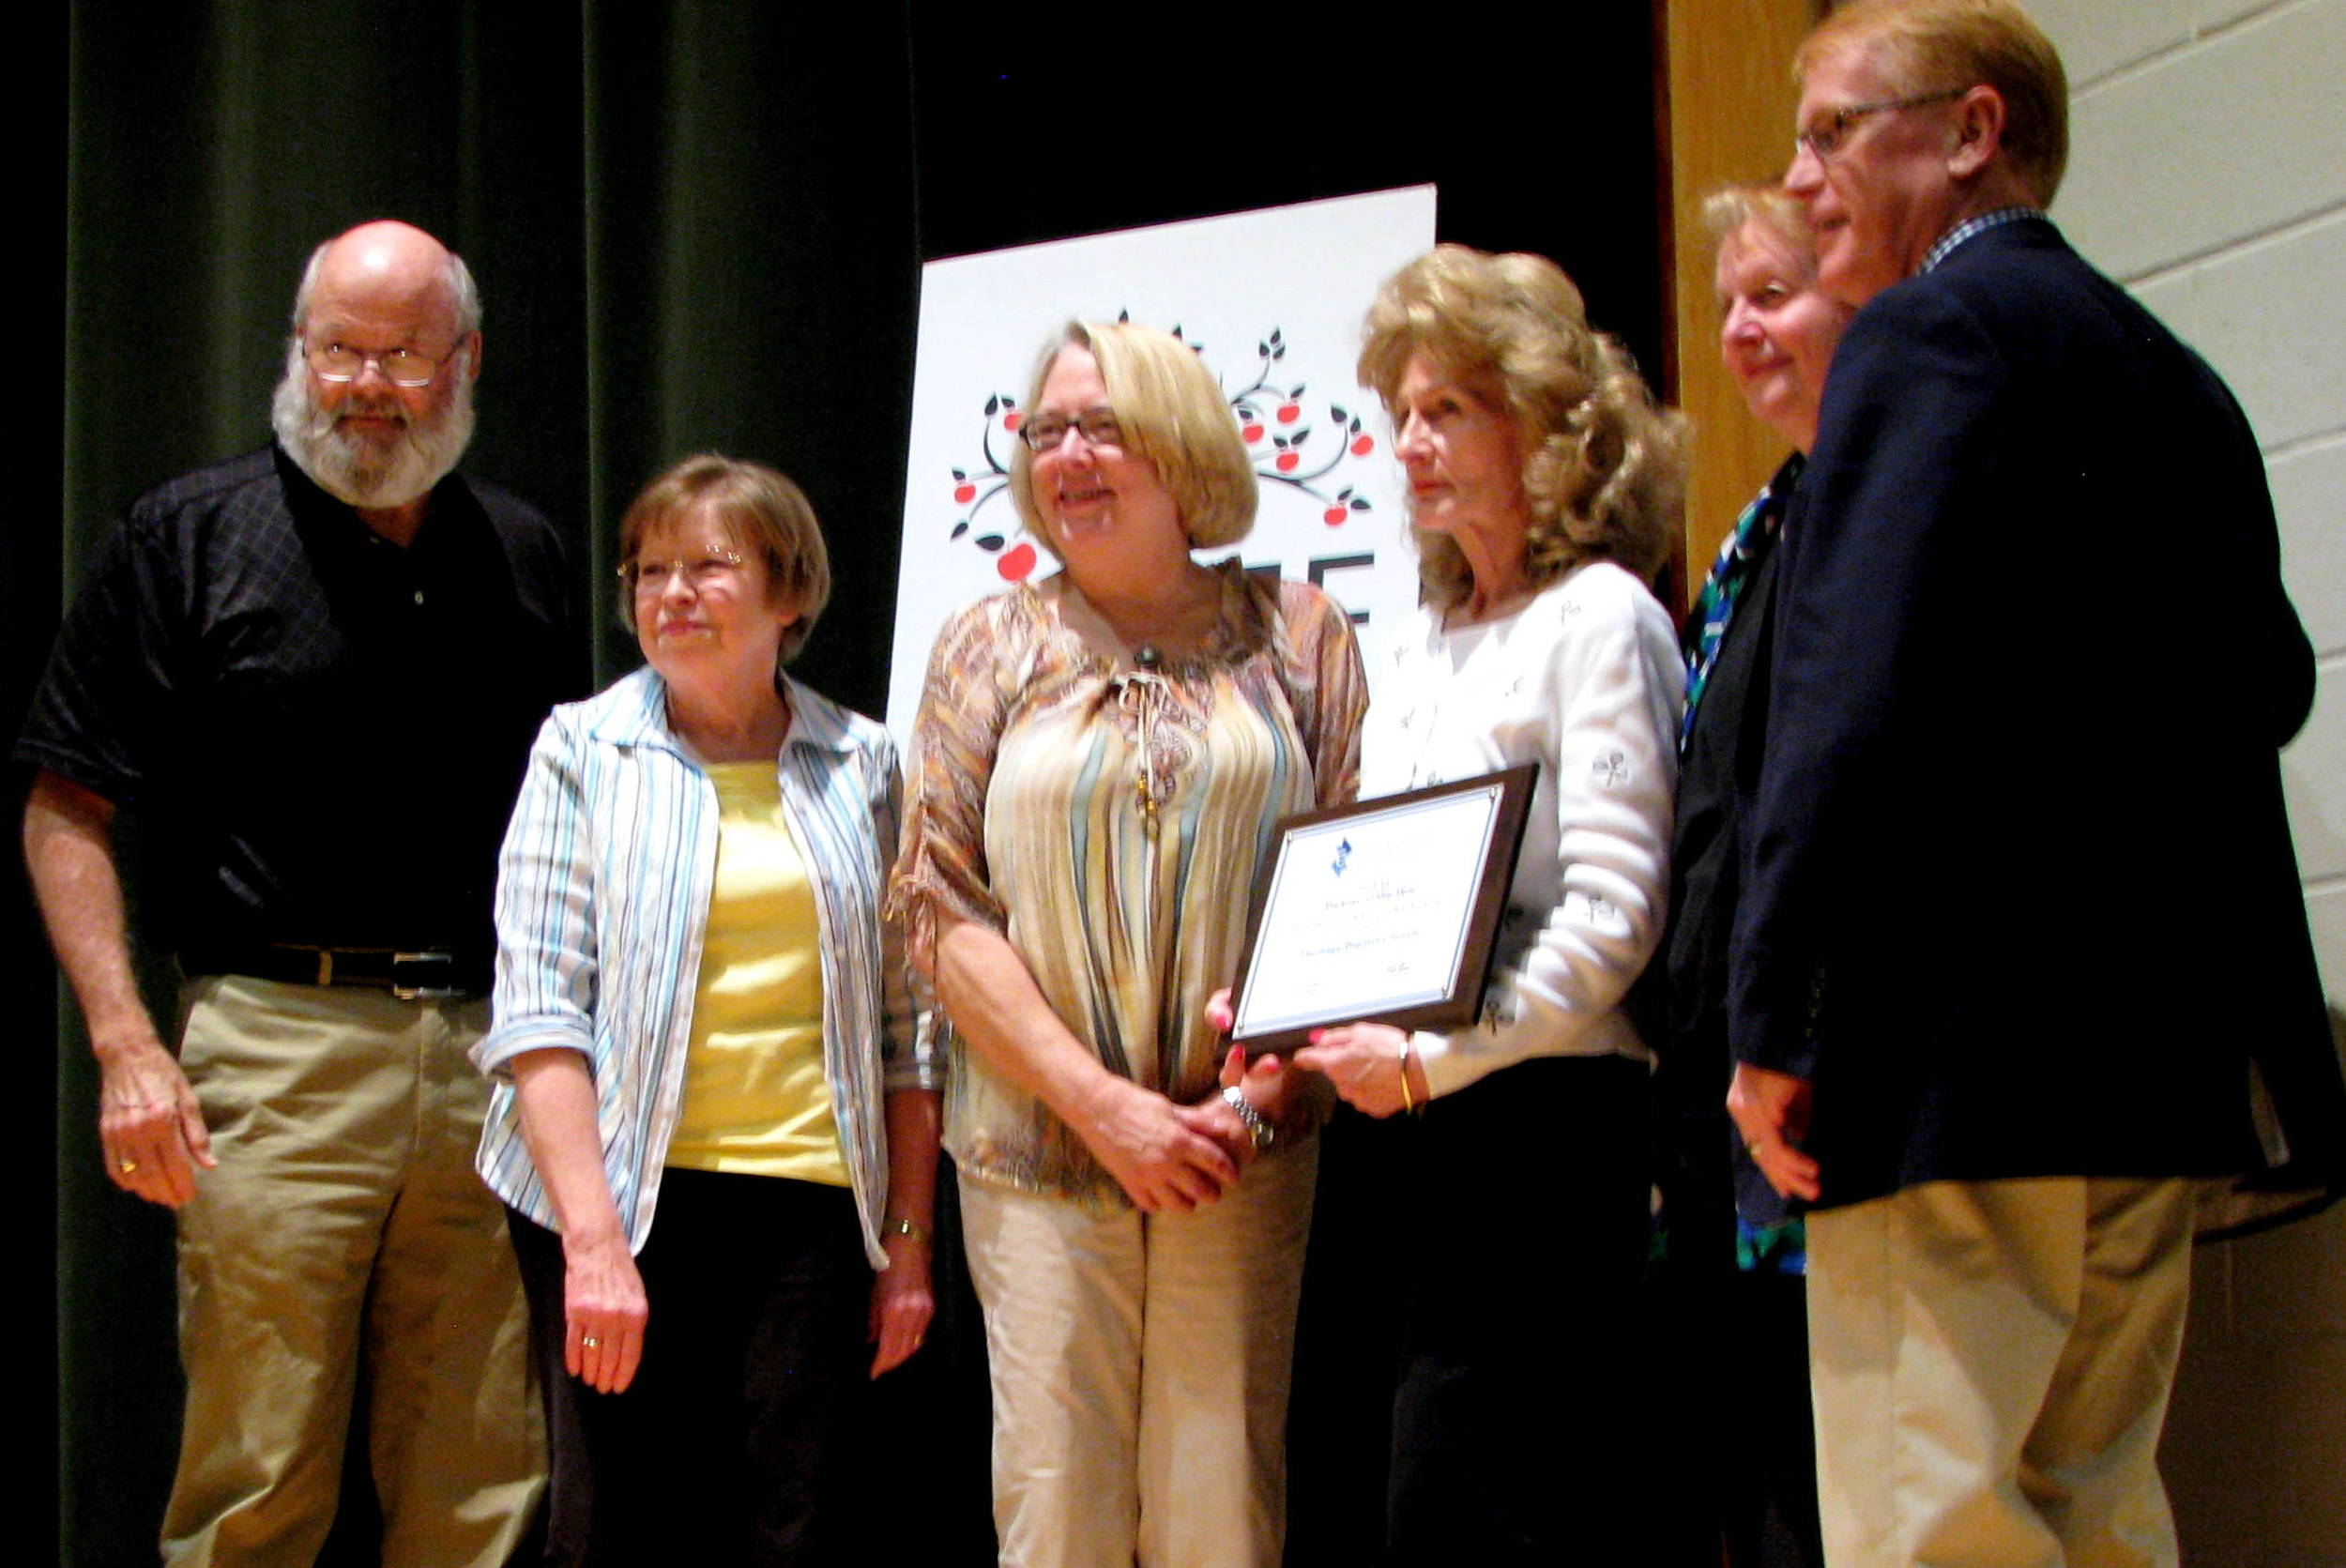 From left to right: Bob Smith, Mary Elizabeth Smith, Cathy Lacy, Kathy Summerford, Connie Denney and Cherokee County School Superintendent, Brian Hightower